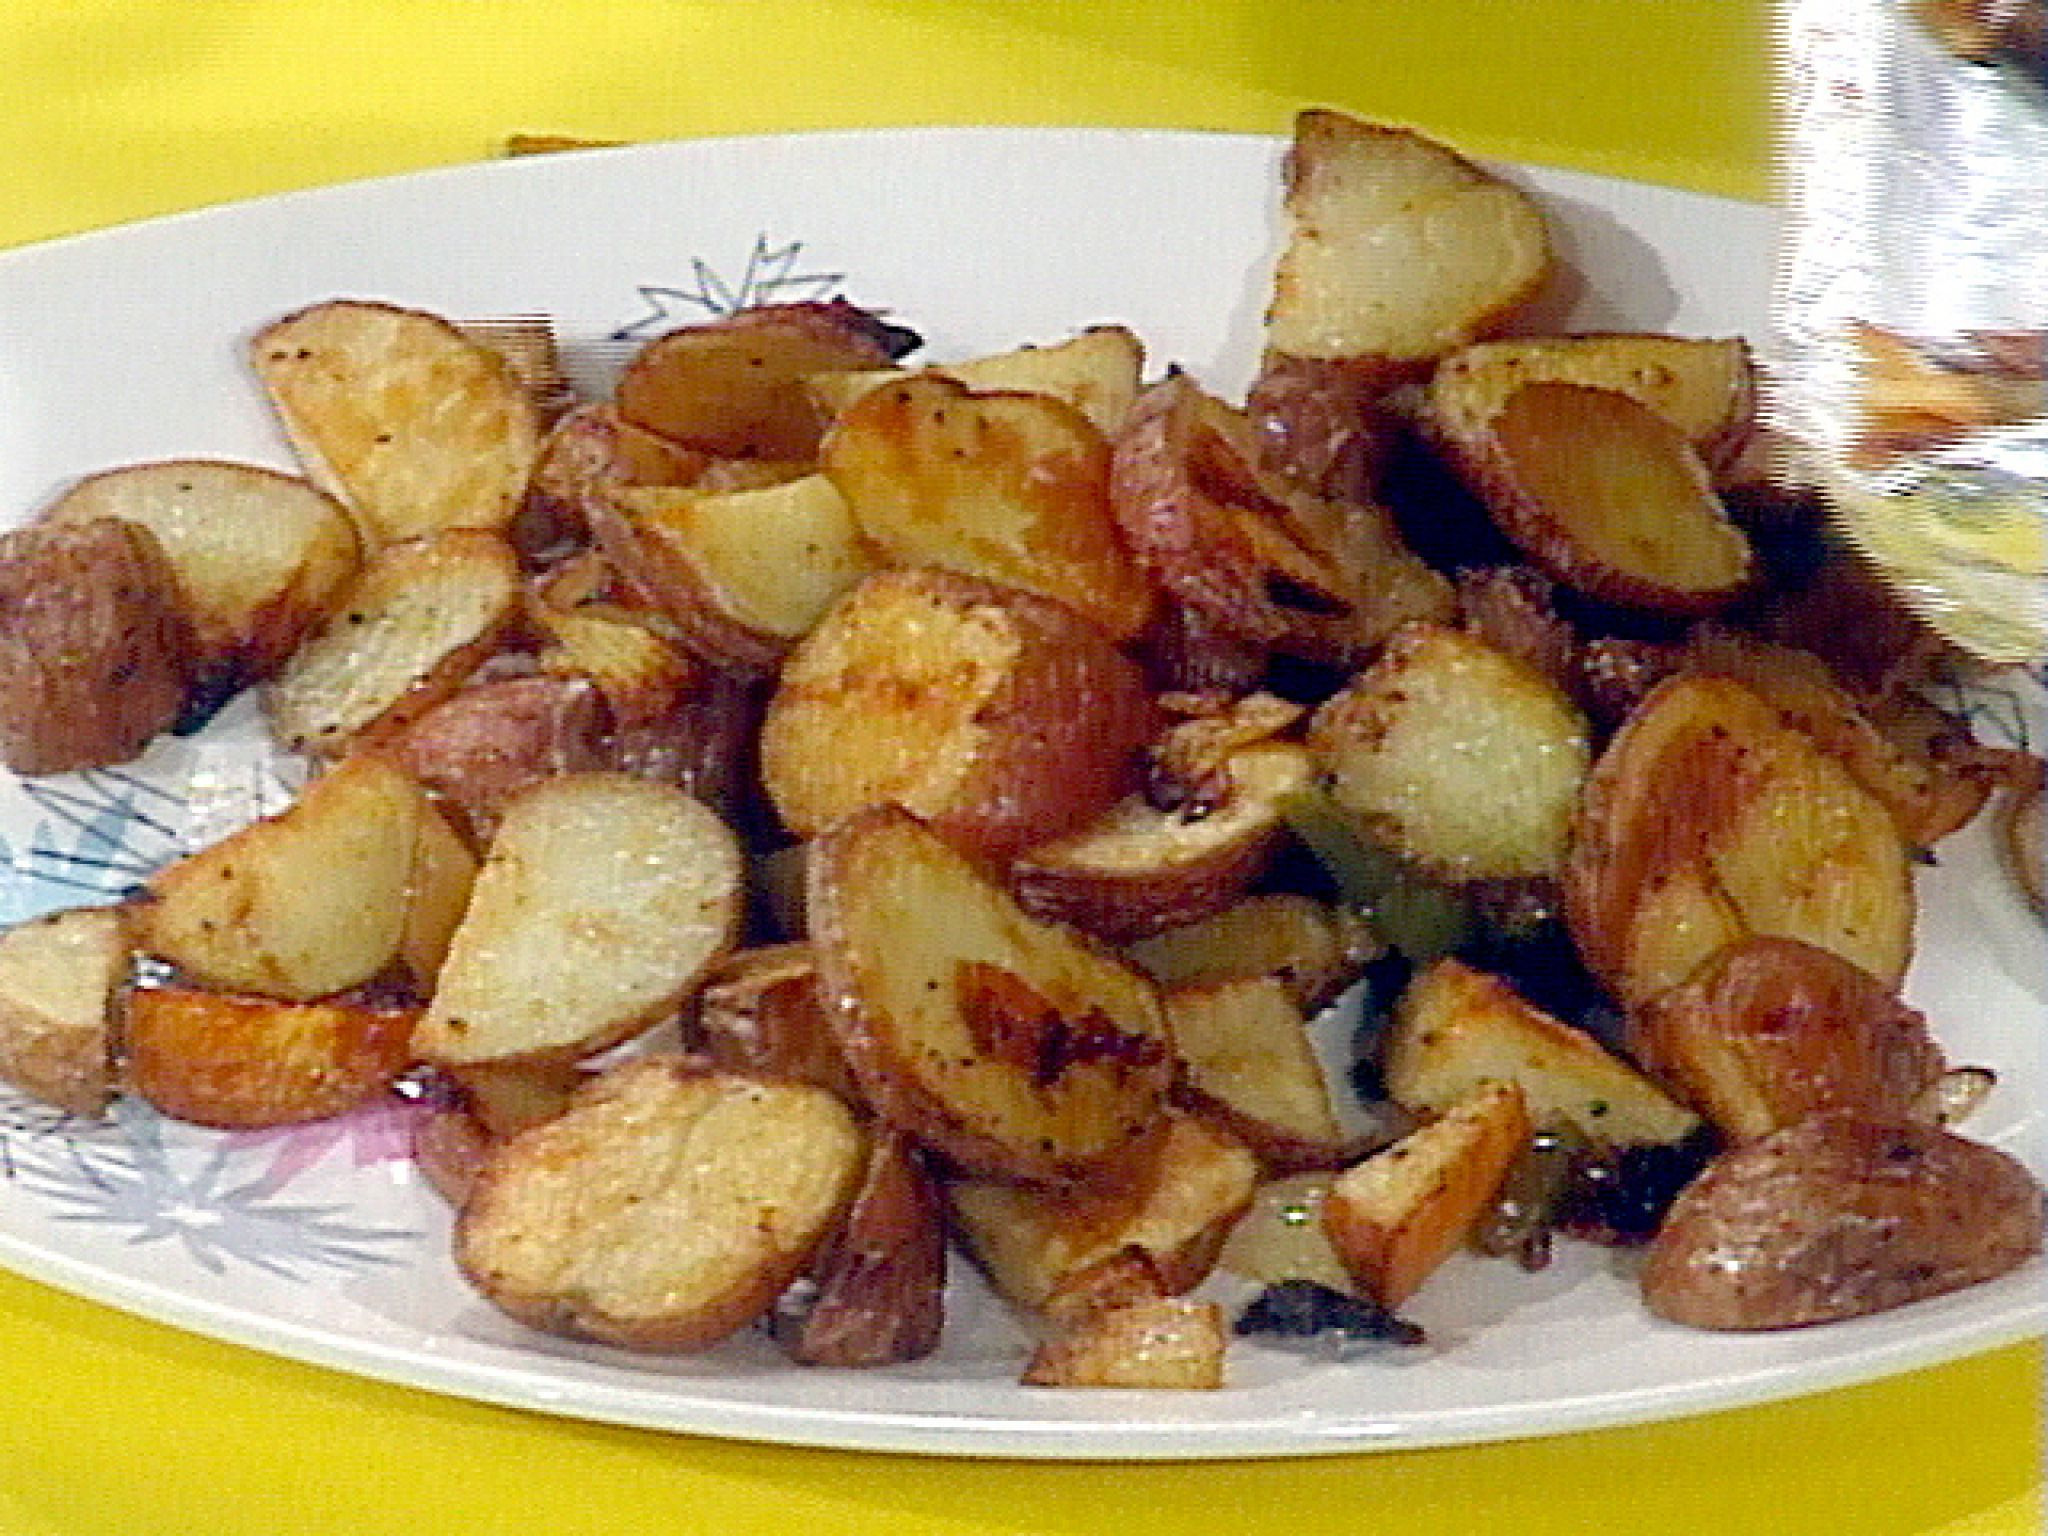 Oven Home Fries With Peppers And Onions Recipe Oven Home Fries Stuffed Peppers Onion Recipes